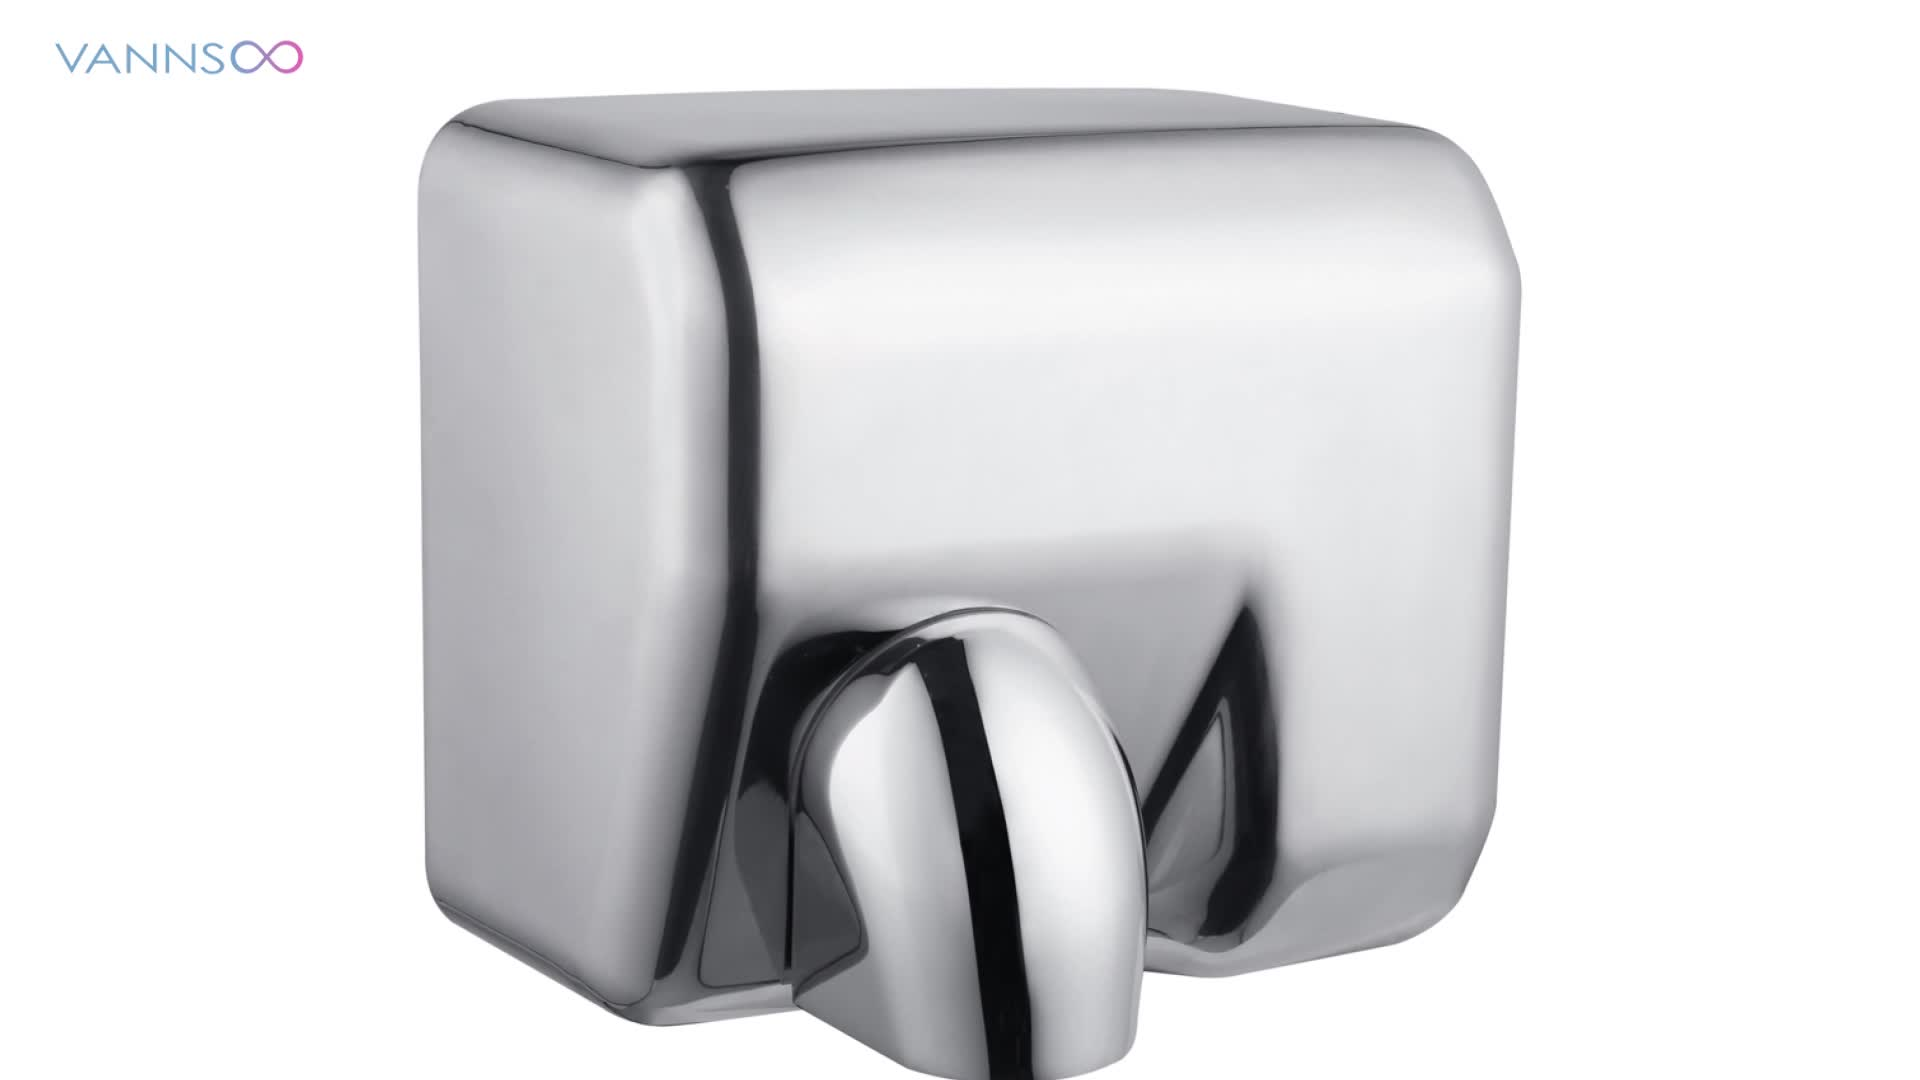 Bathroom Stainless Steel Electric Hand Dryer for Toliet